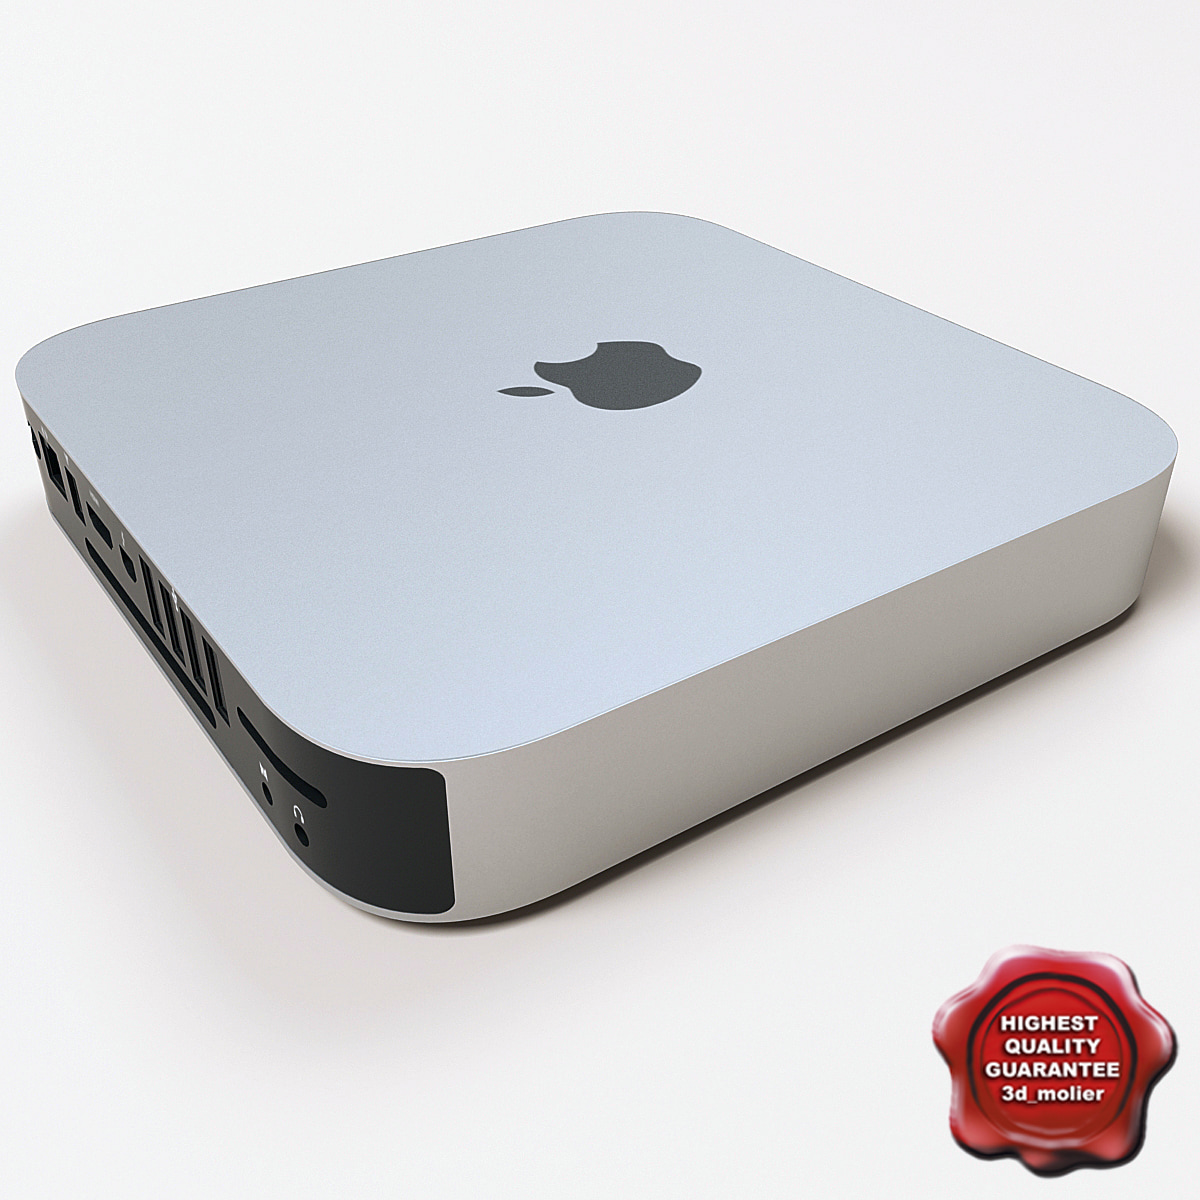 Apple_Mac_Mini_V2_00.jpg